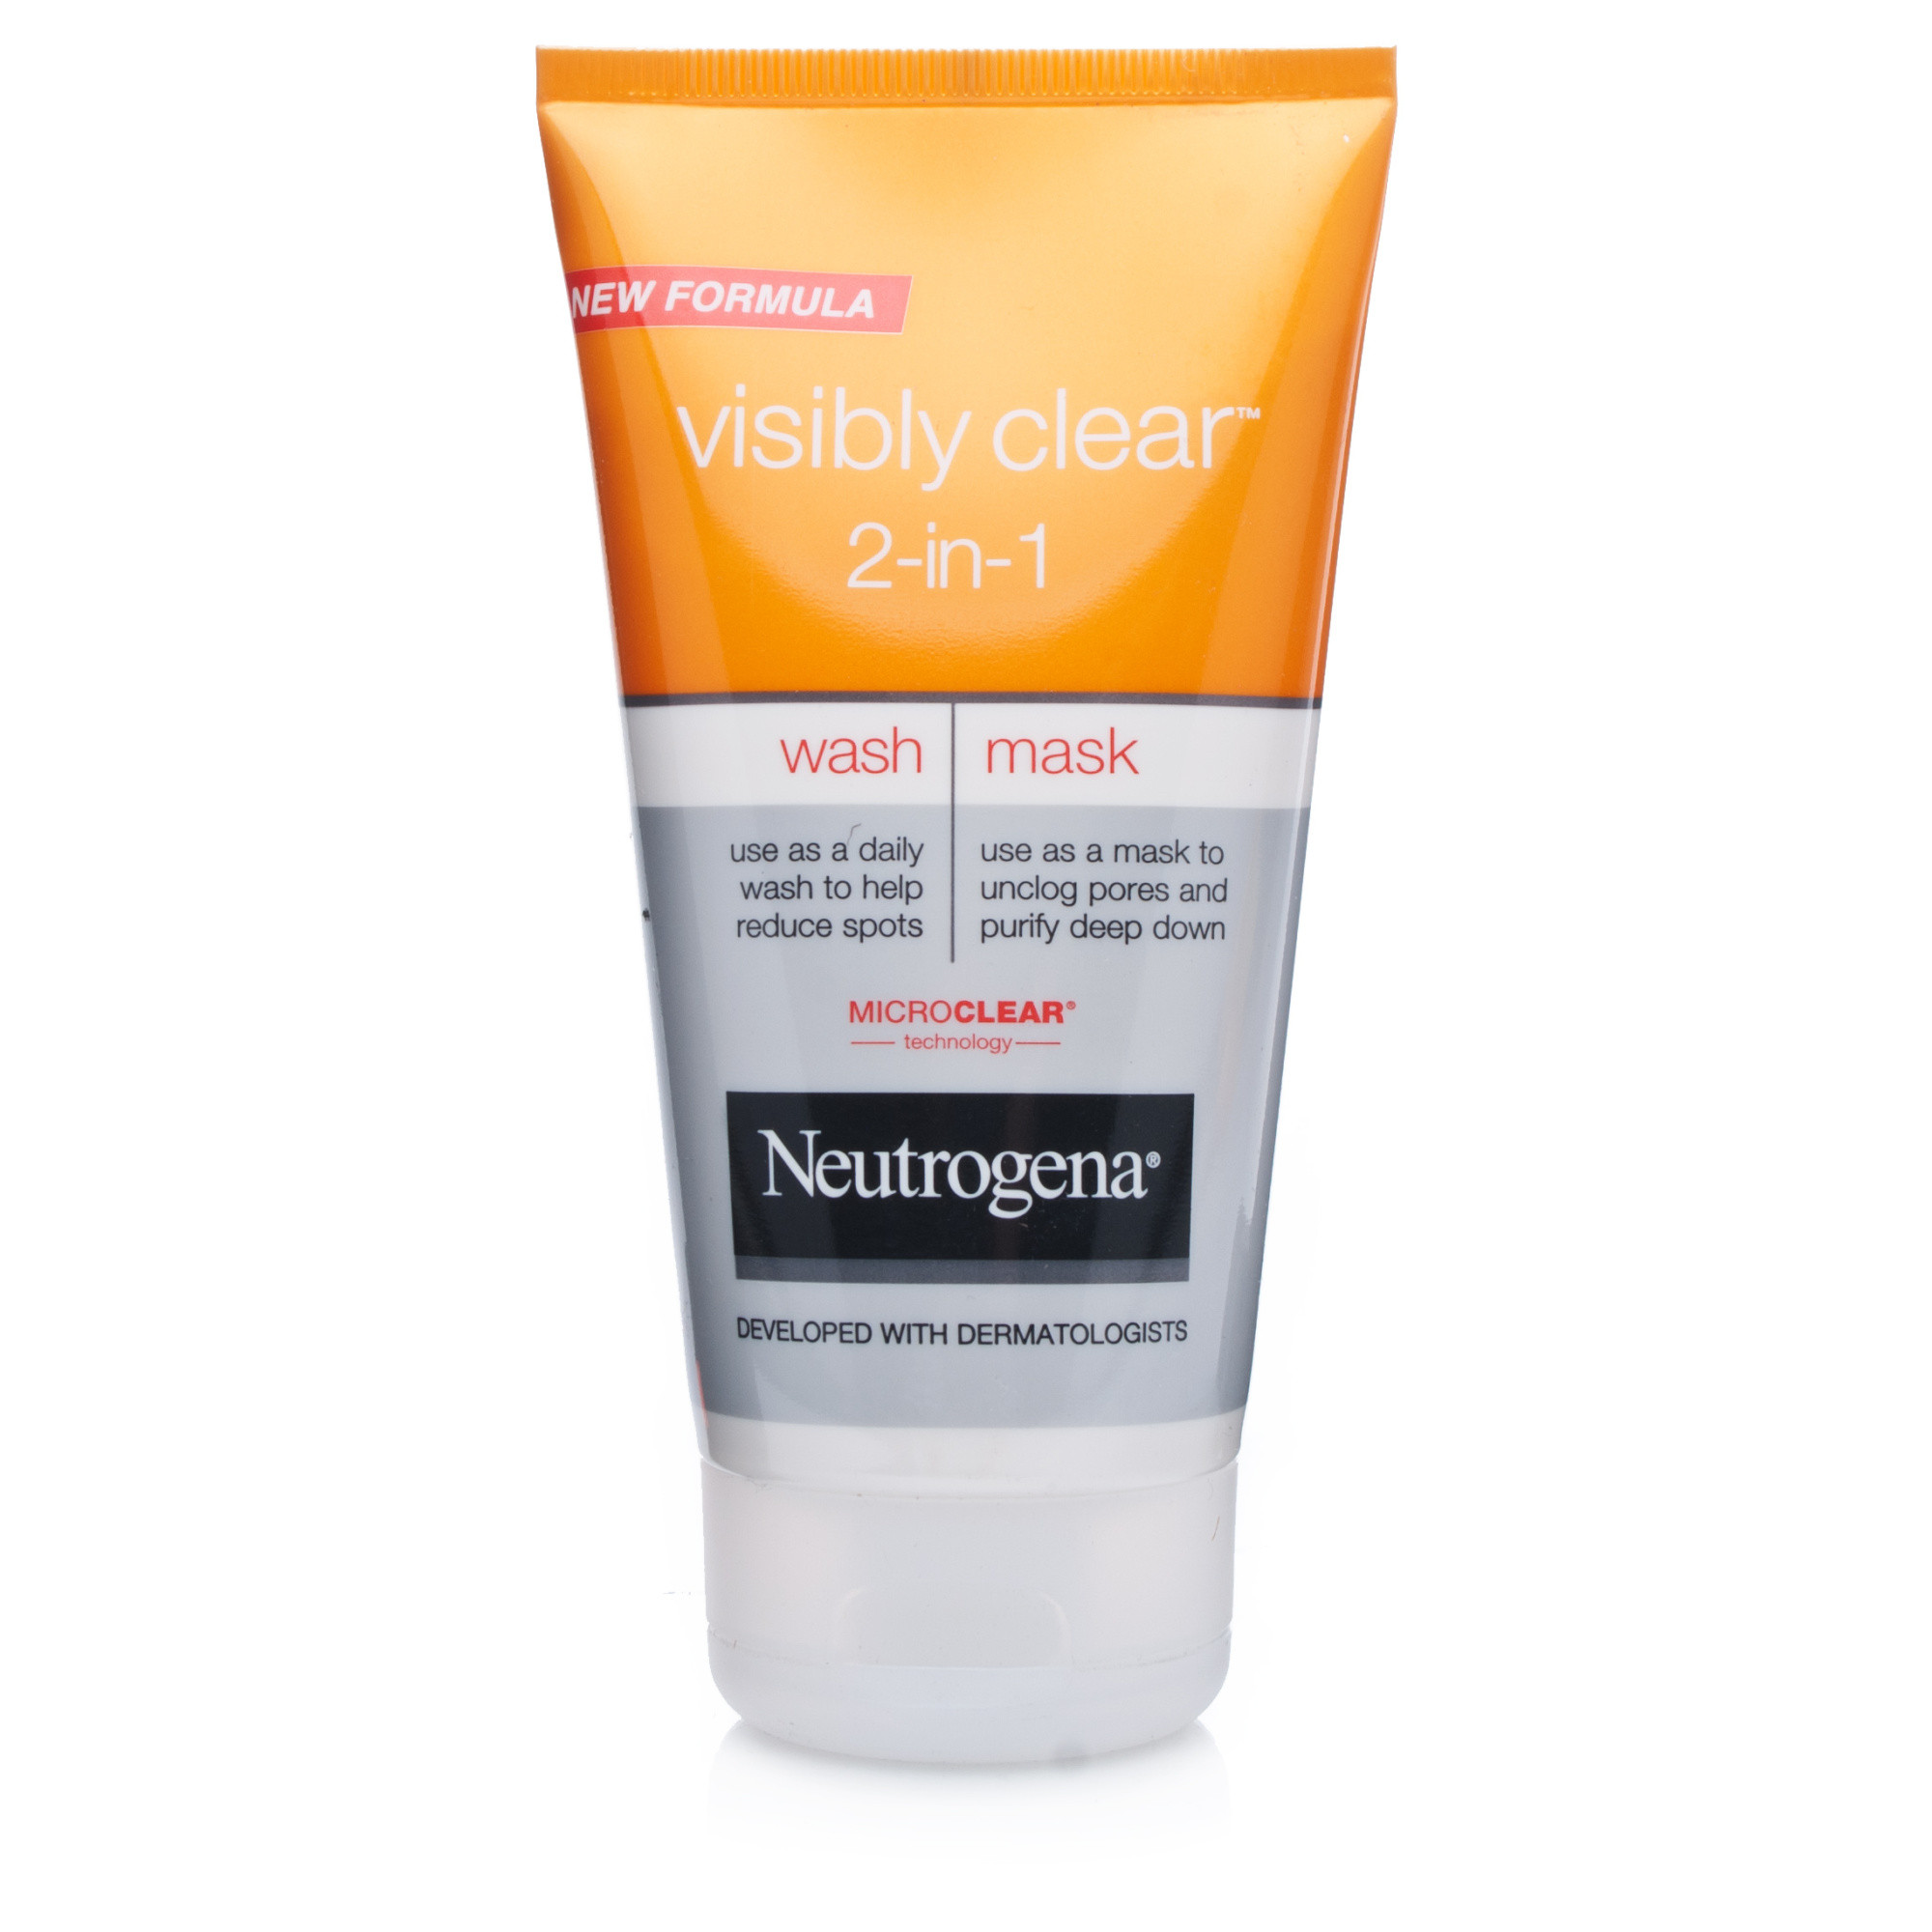 Neutrogena Visibly Clear 2 in 1 Wash & Mask